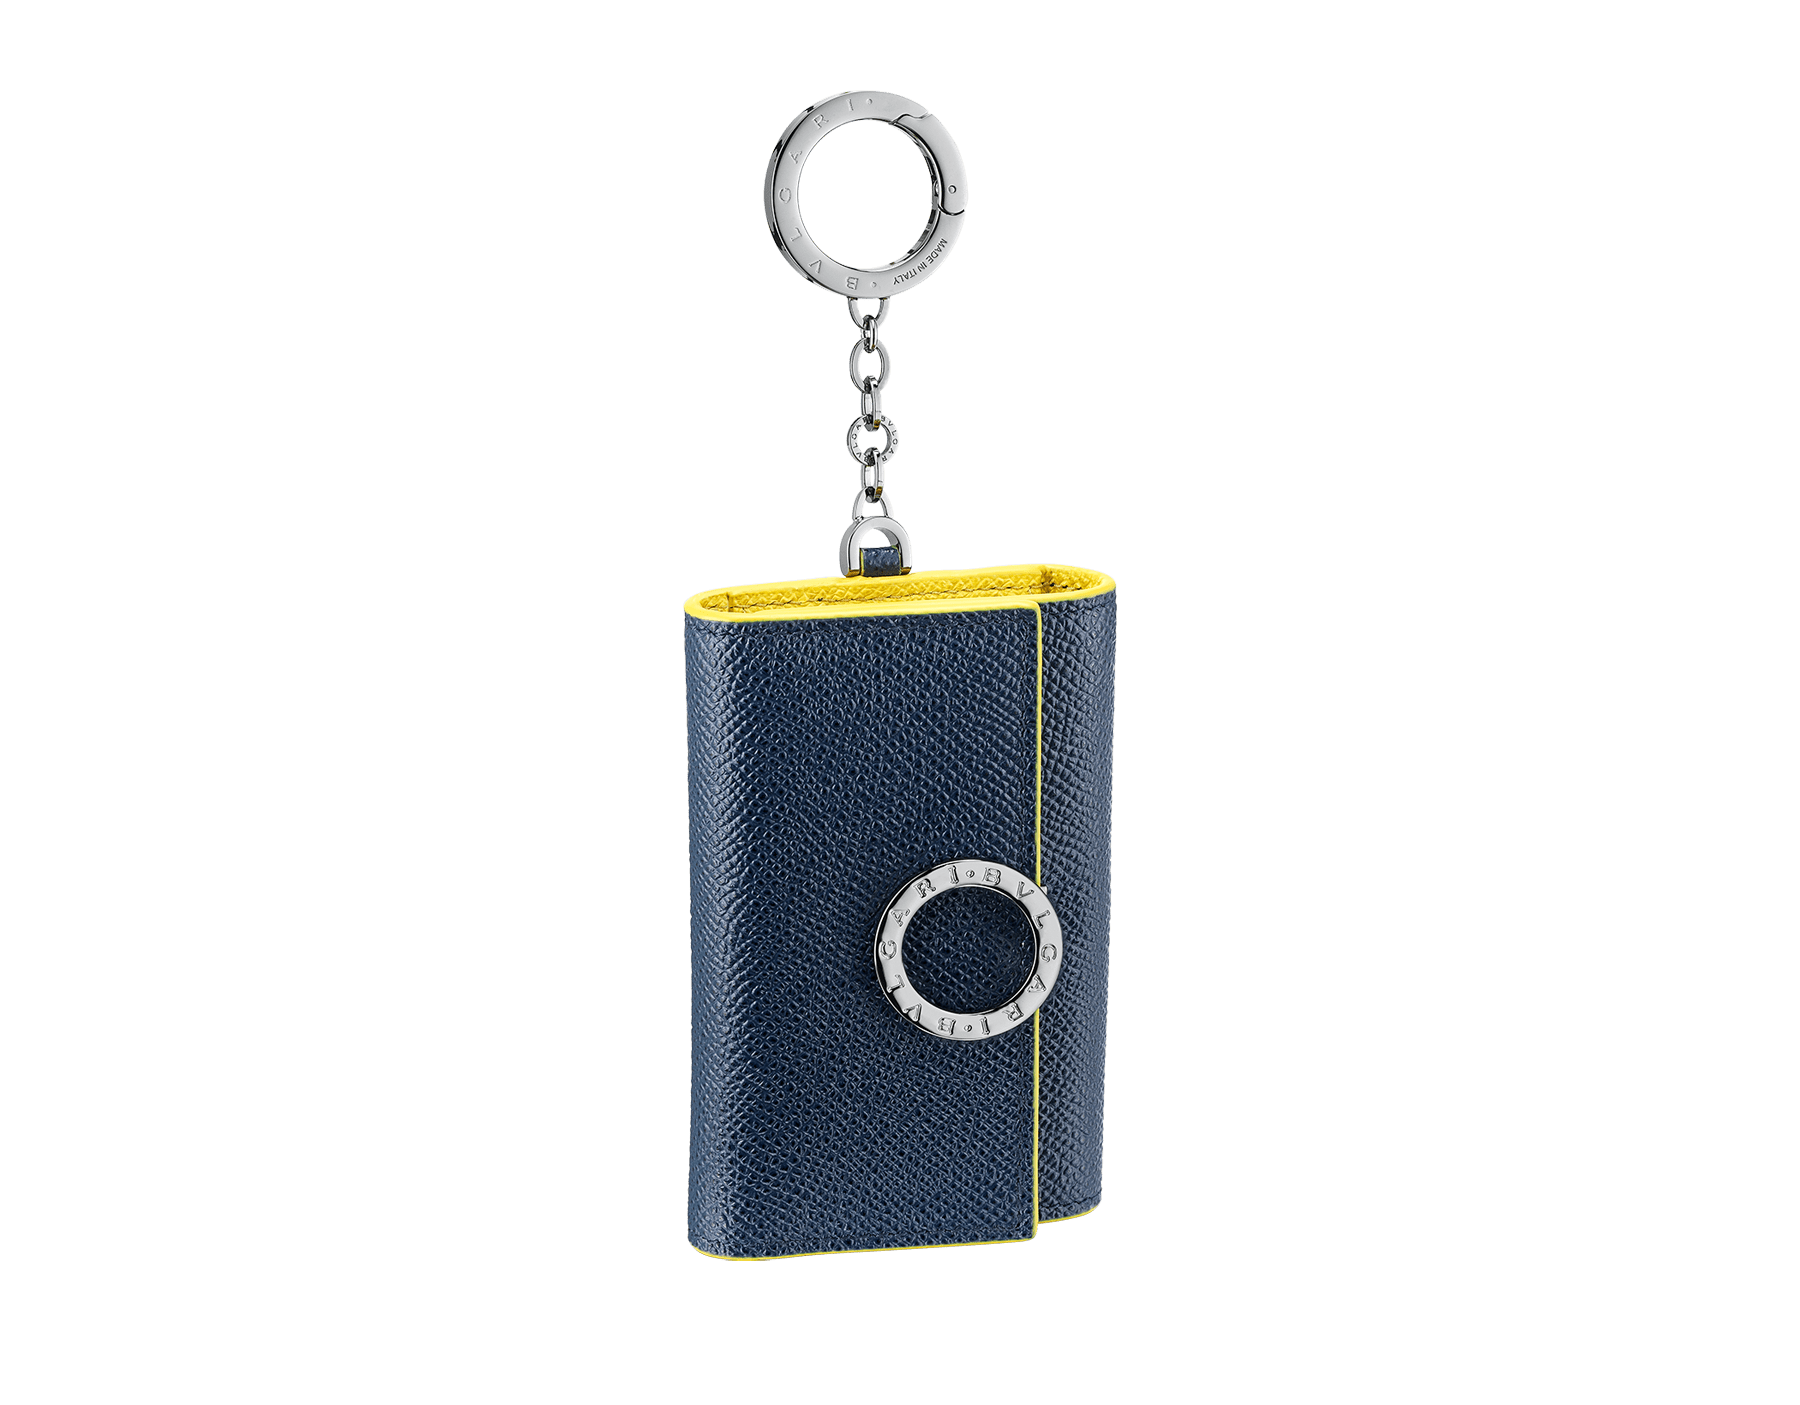 BVLGARI BVLGARI key holder in denim sapphire and daisy topaz grain calf leather. Iconic logo décor and snap hook in palladium-plated brass. 289866 image 1